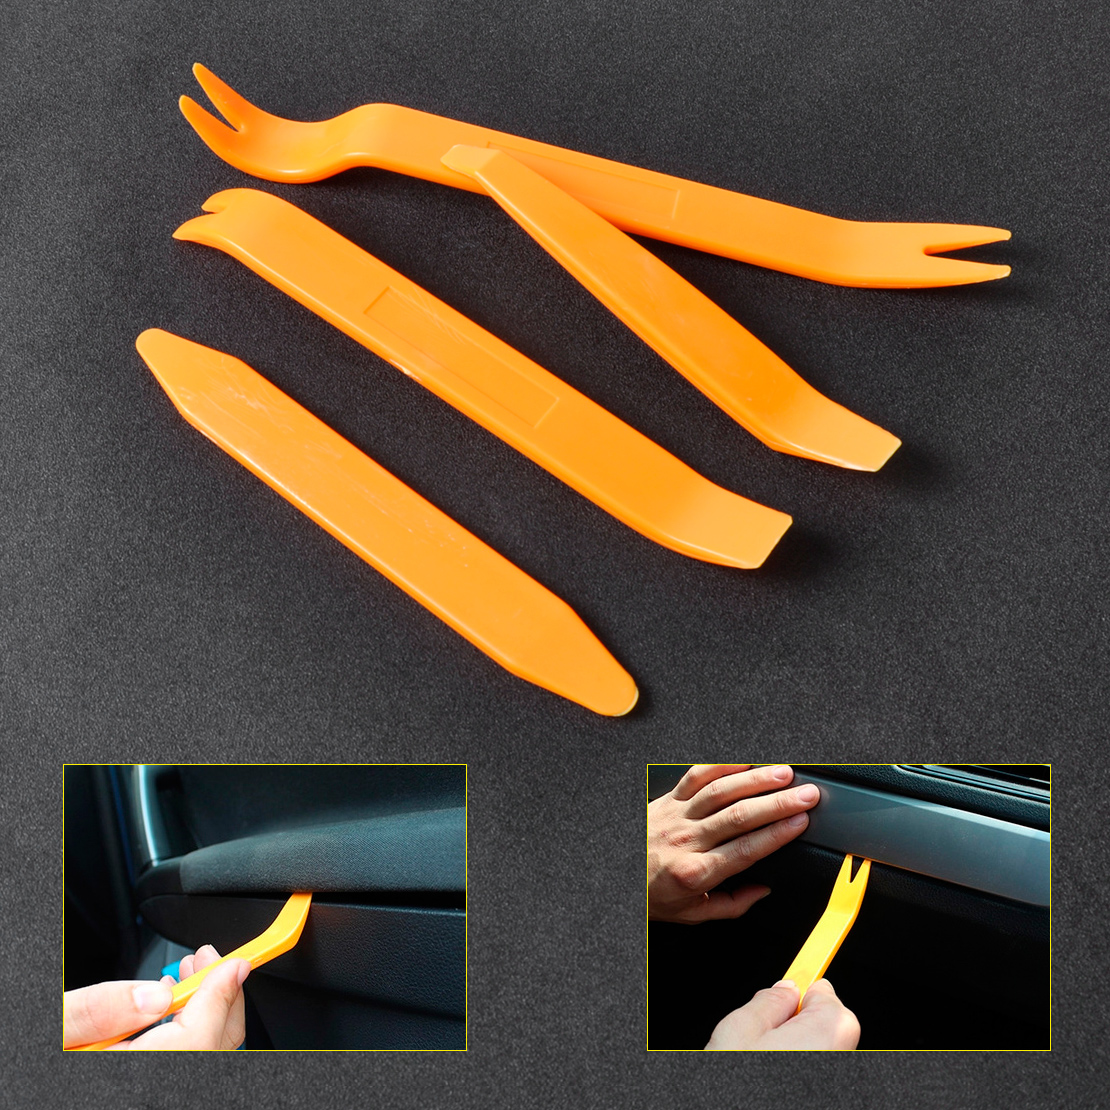 beler 4pcs Plastic Car Door / Radio Trim Panel Molding Removal Double Ended Installer Pry Tools